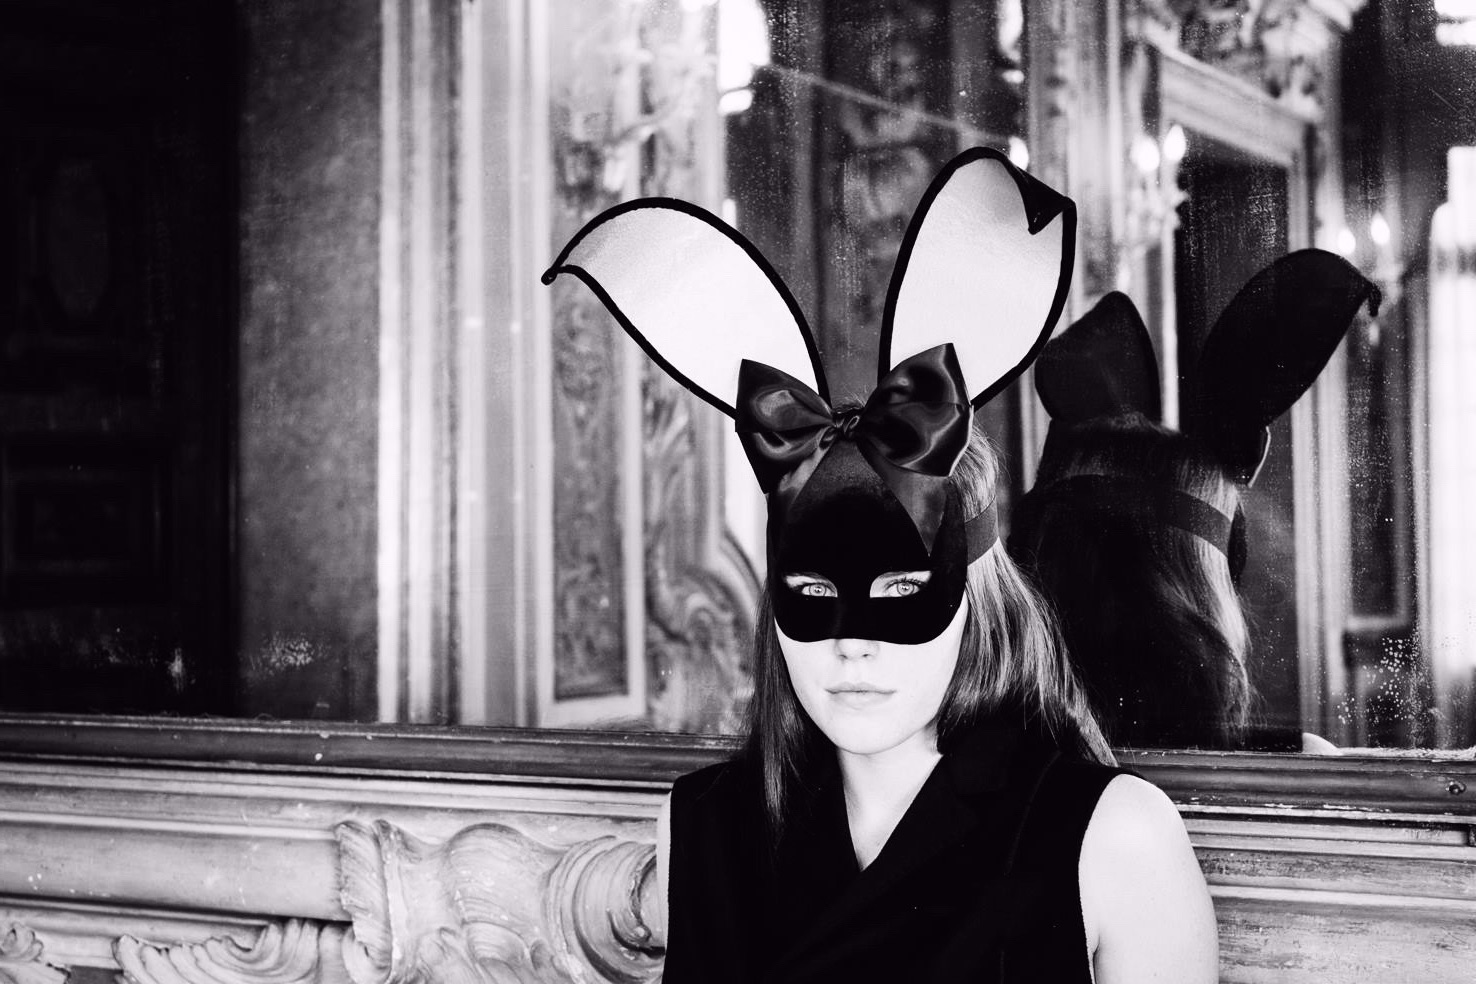 stunning dark haired woman wearing a bunny girl mask